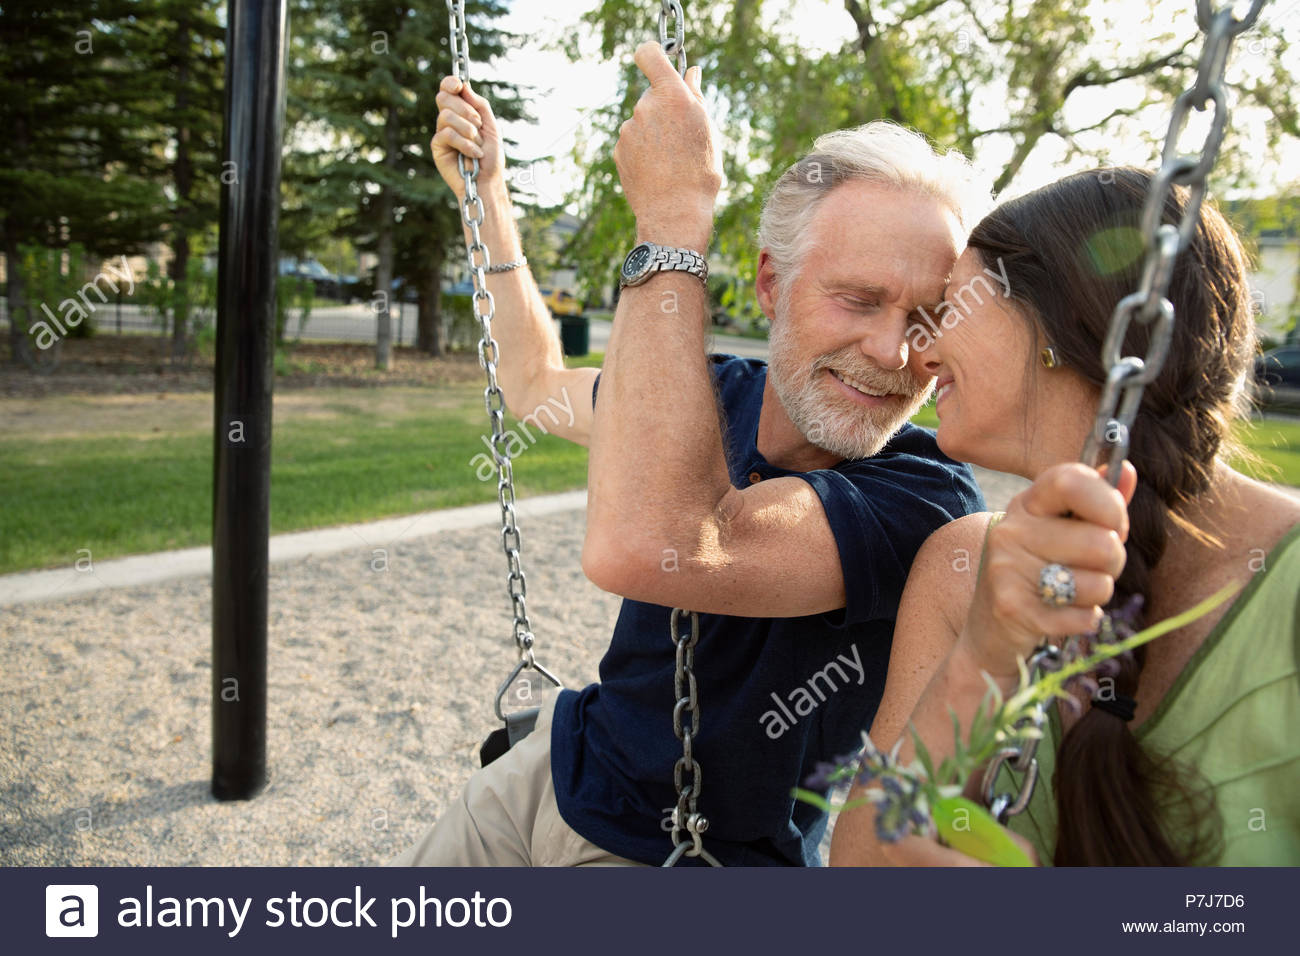 Affectionate senior couple on swings at playground - Stock Image